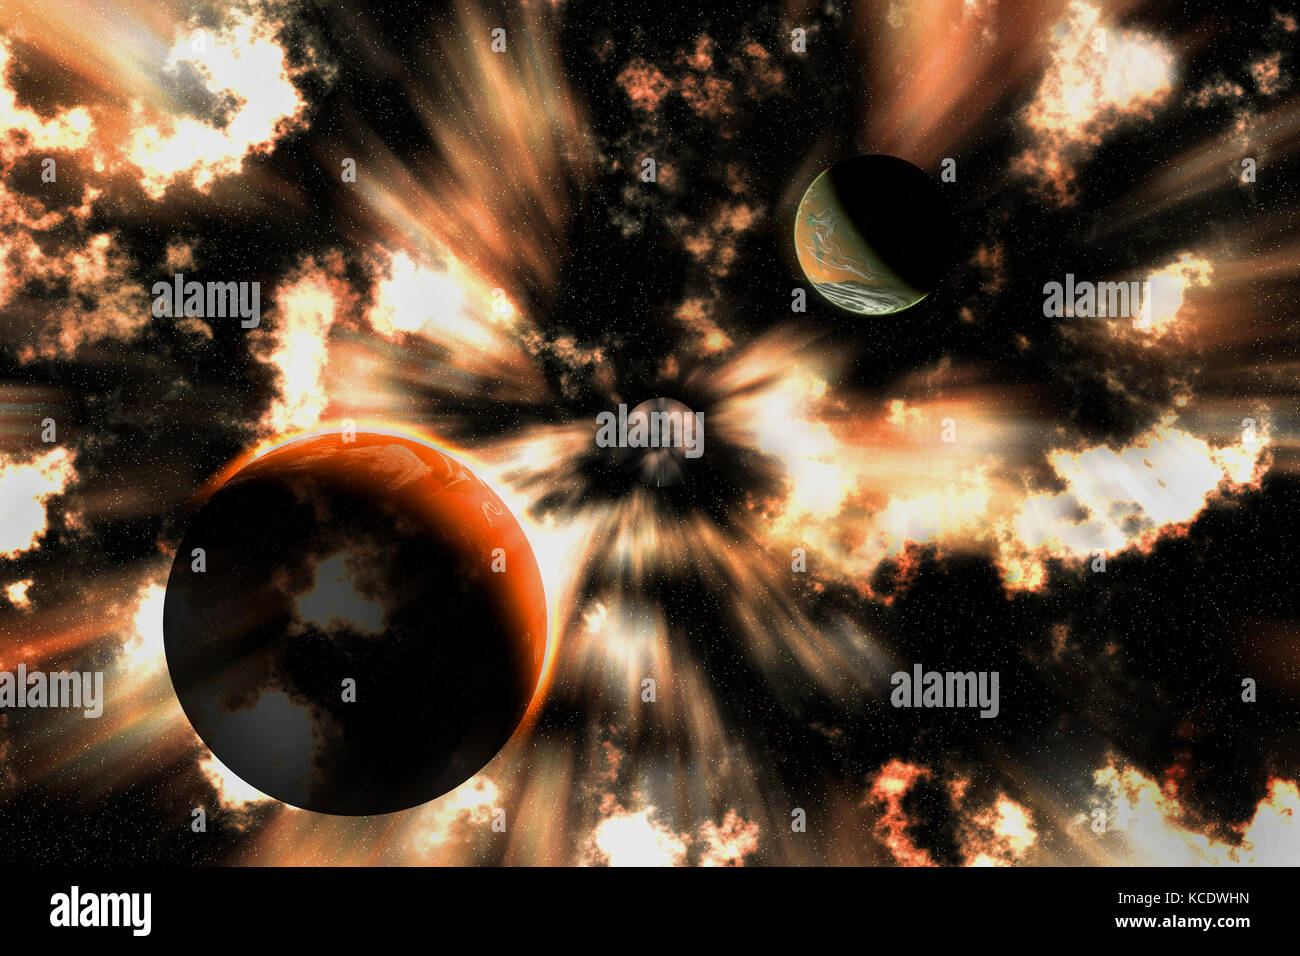 Planets Speeding Towards A Black Hole. - Stock Image